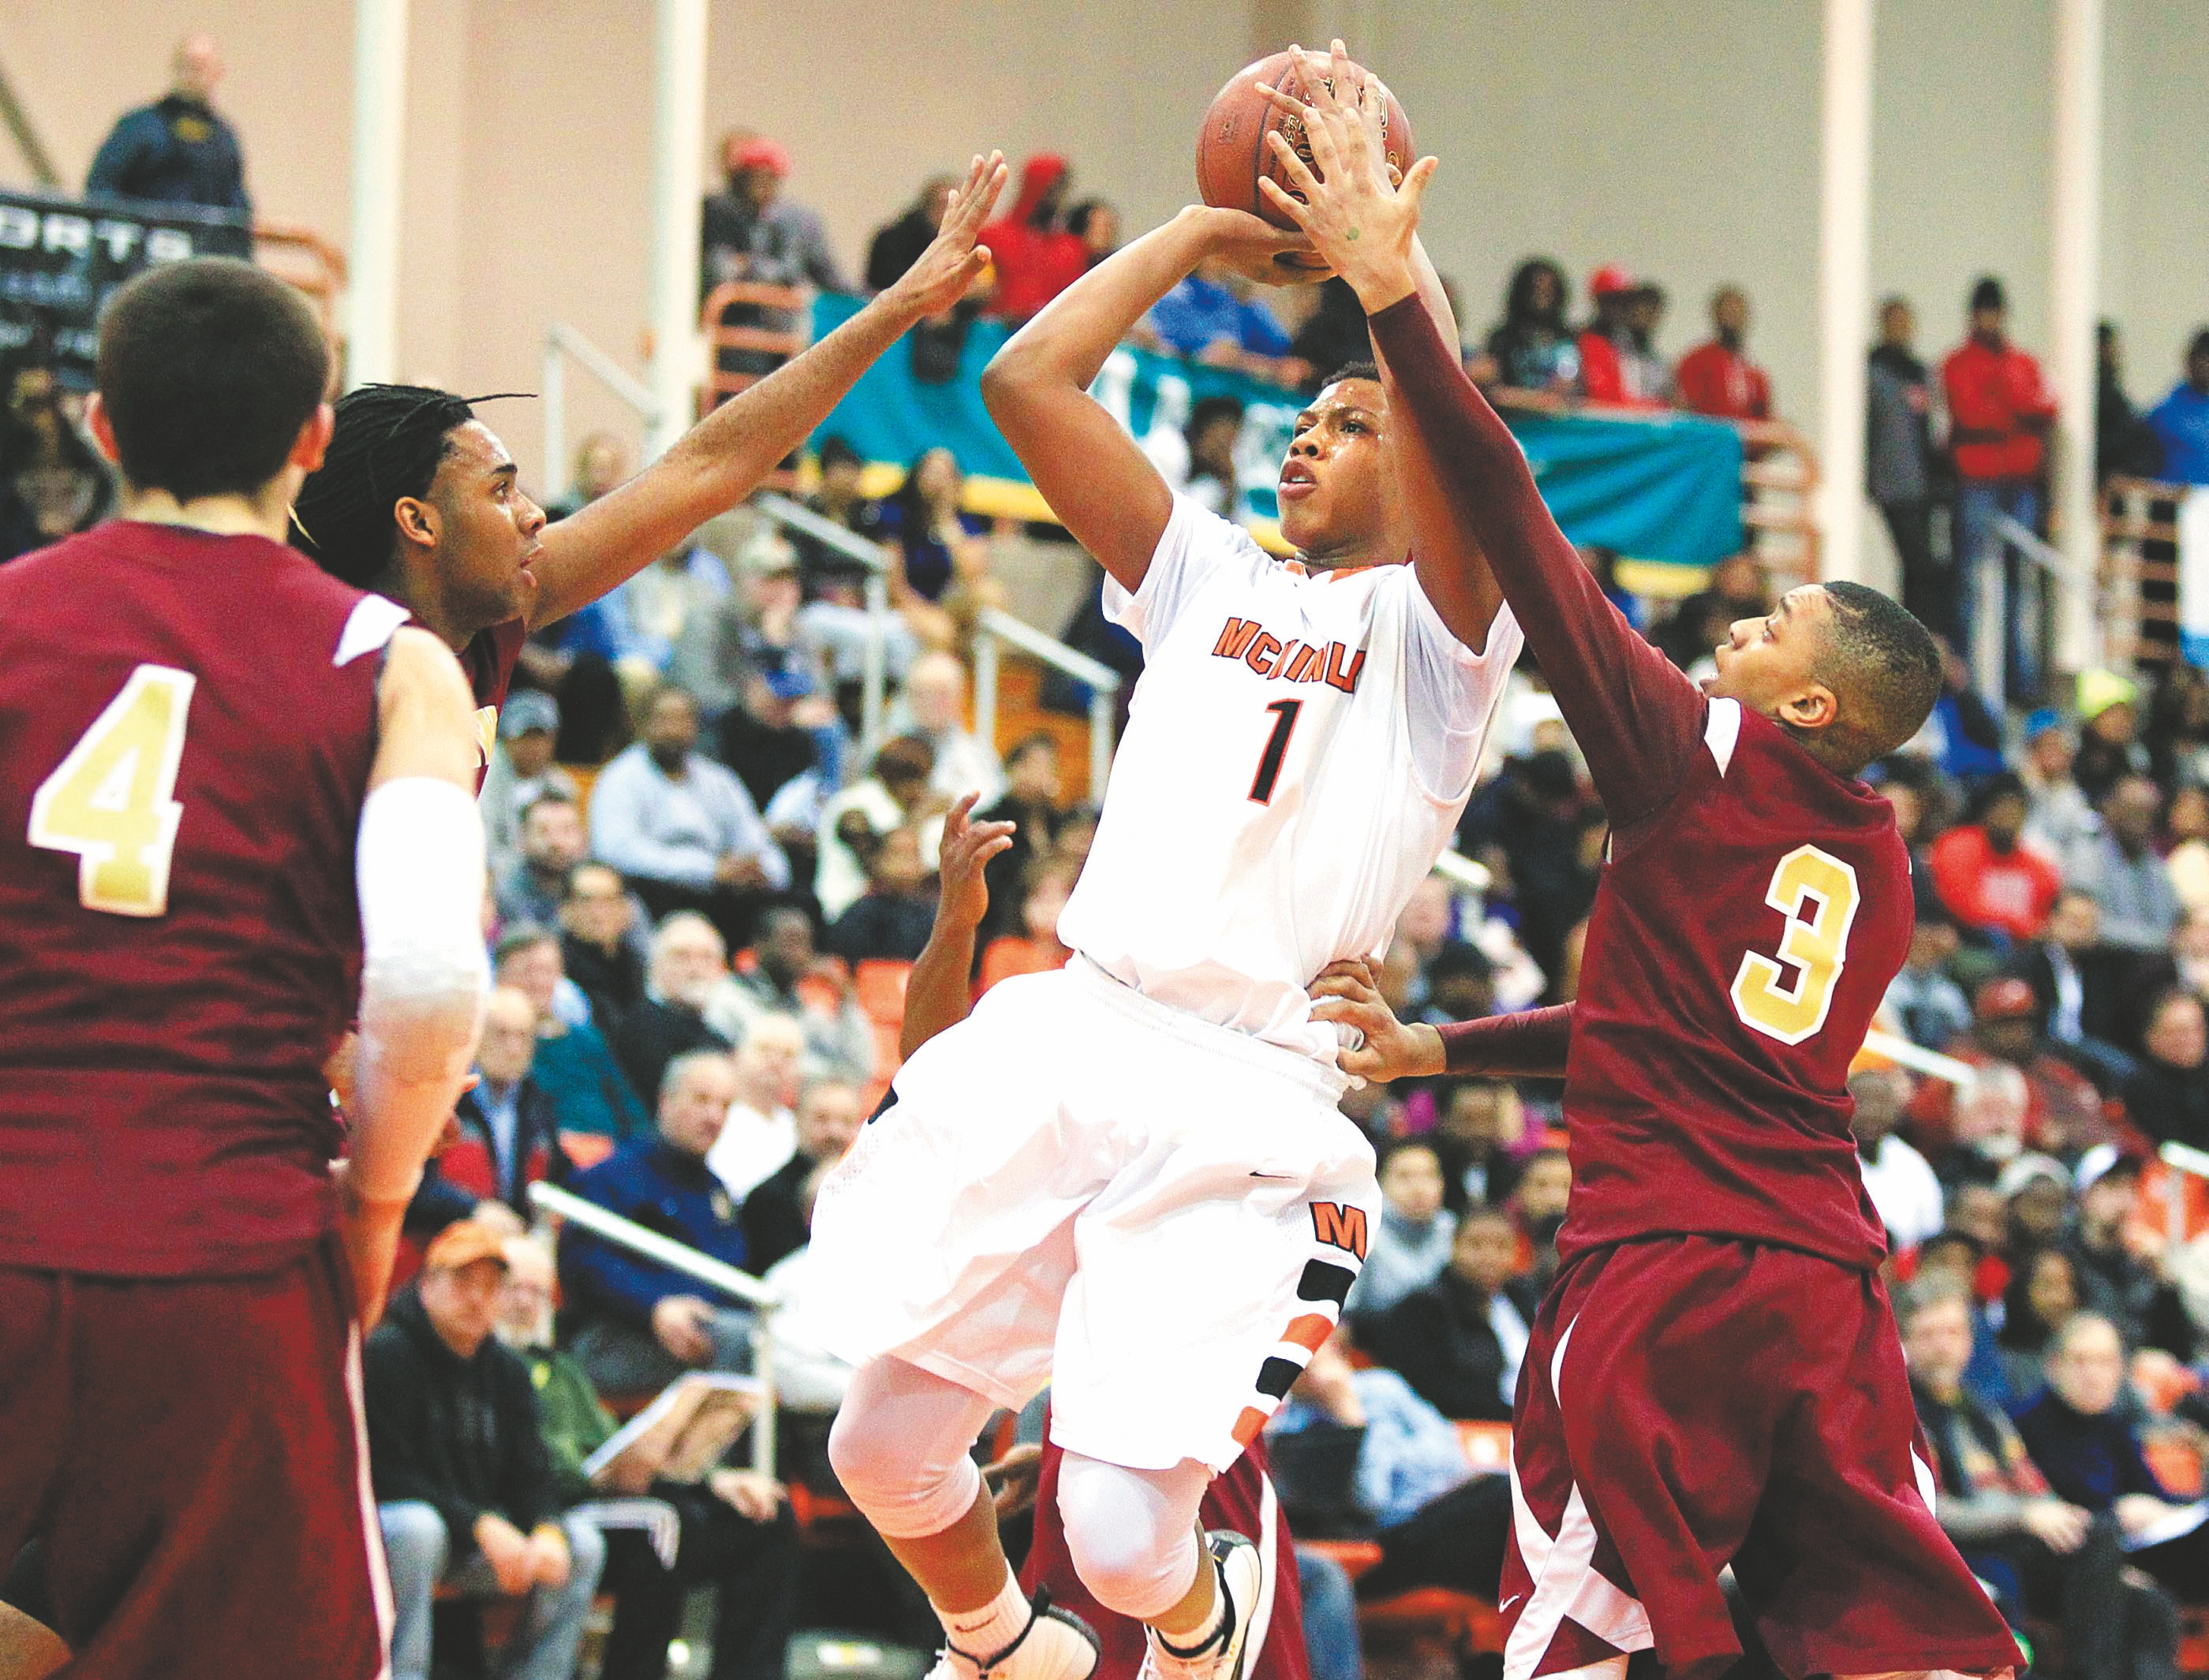 McKinley's Devon Morris (1) shoots between three Cheektowaga players in Tuesday's game at Buffalo State.